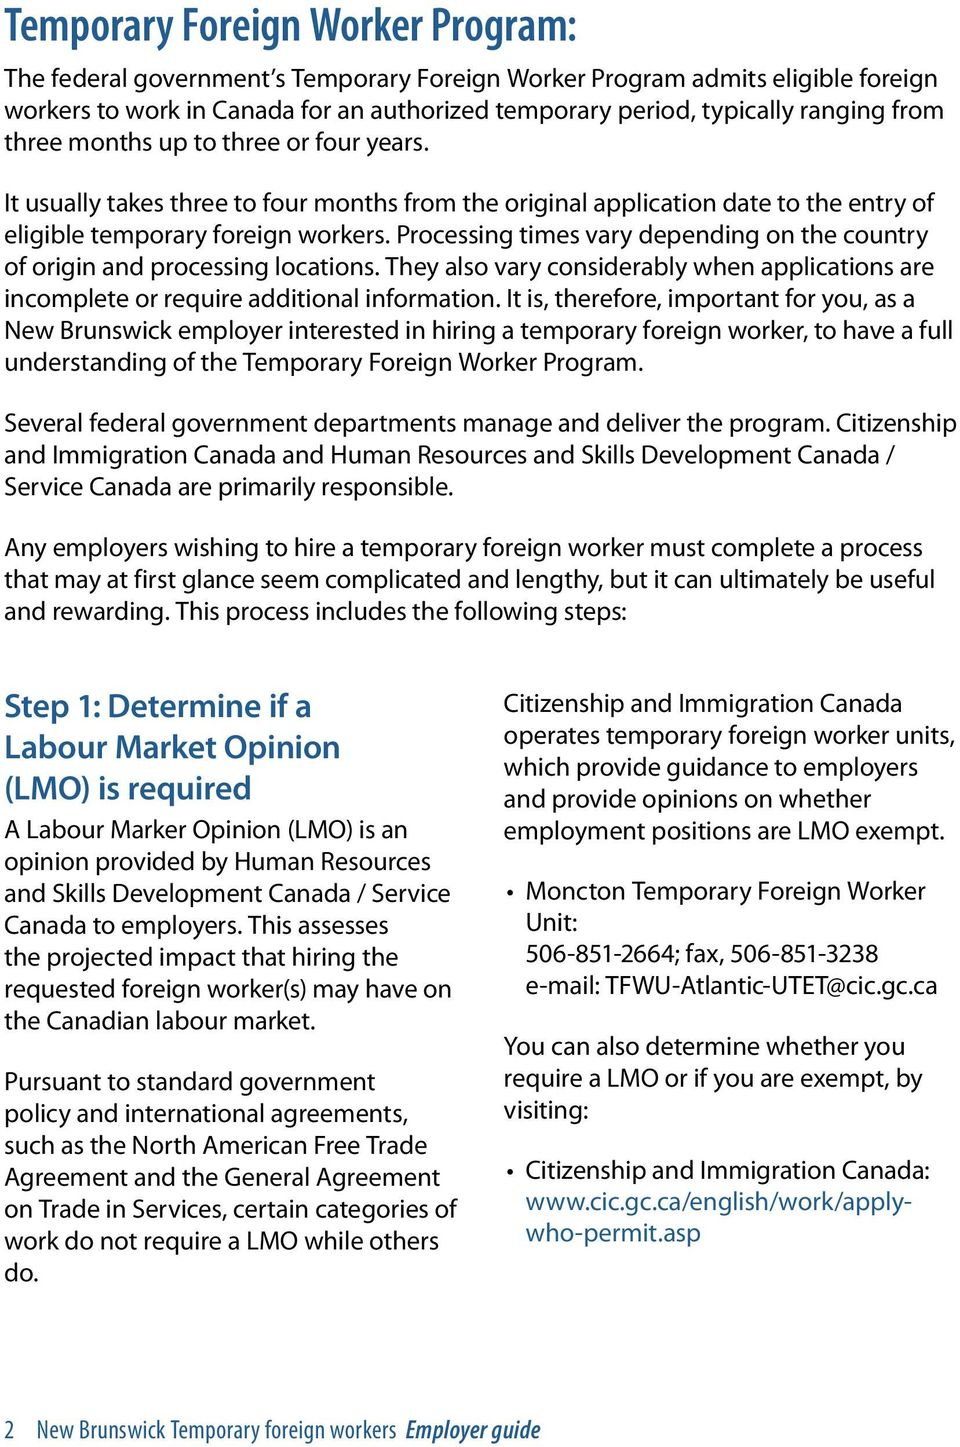 New Brunswick Temporary Foreign Workers Employer guide - PDF